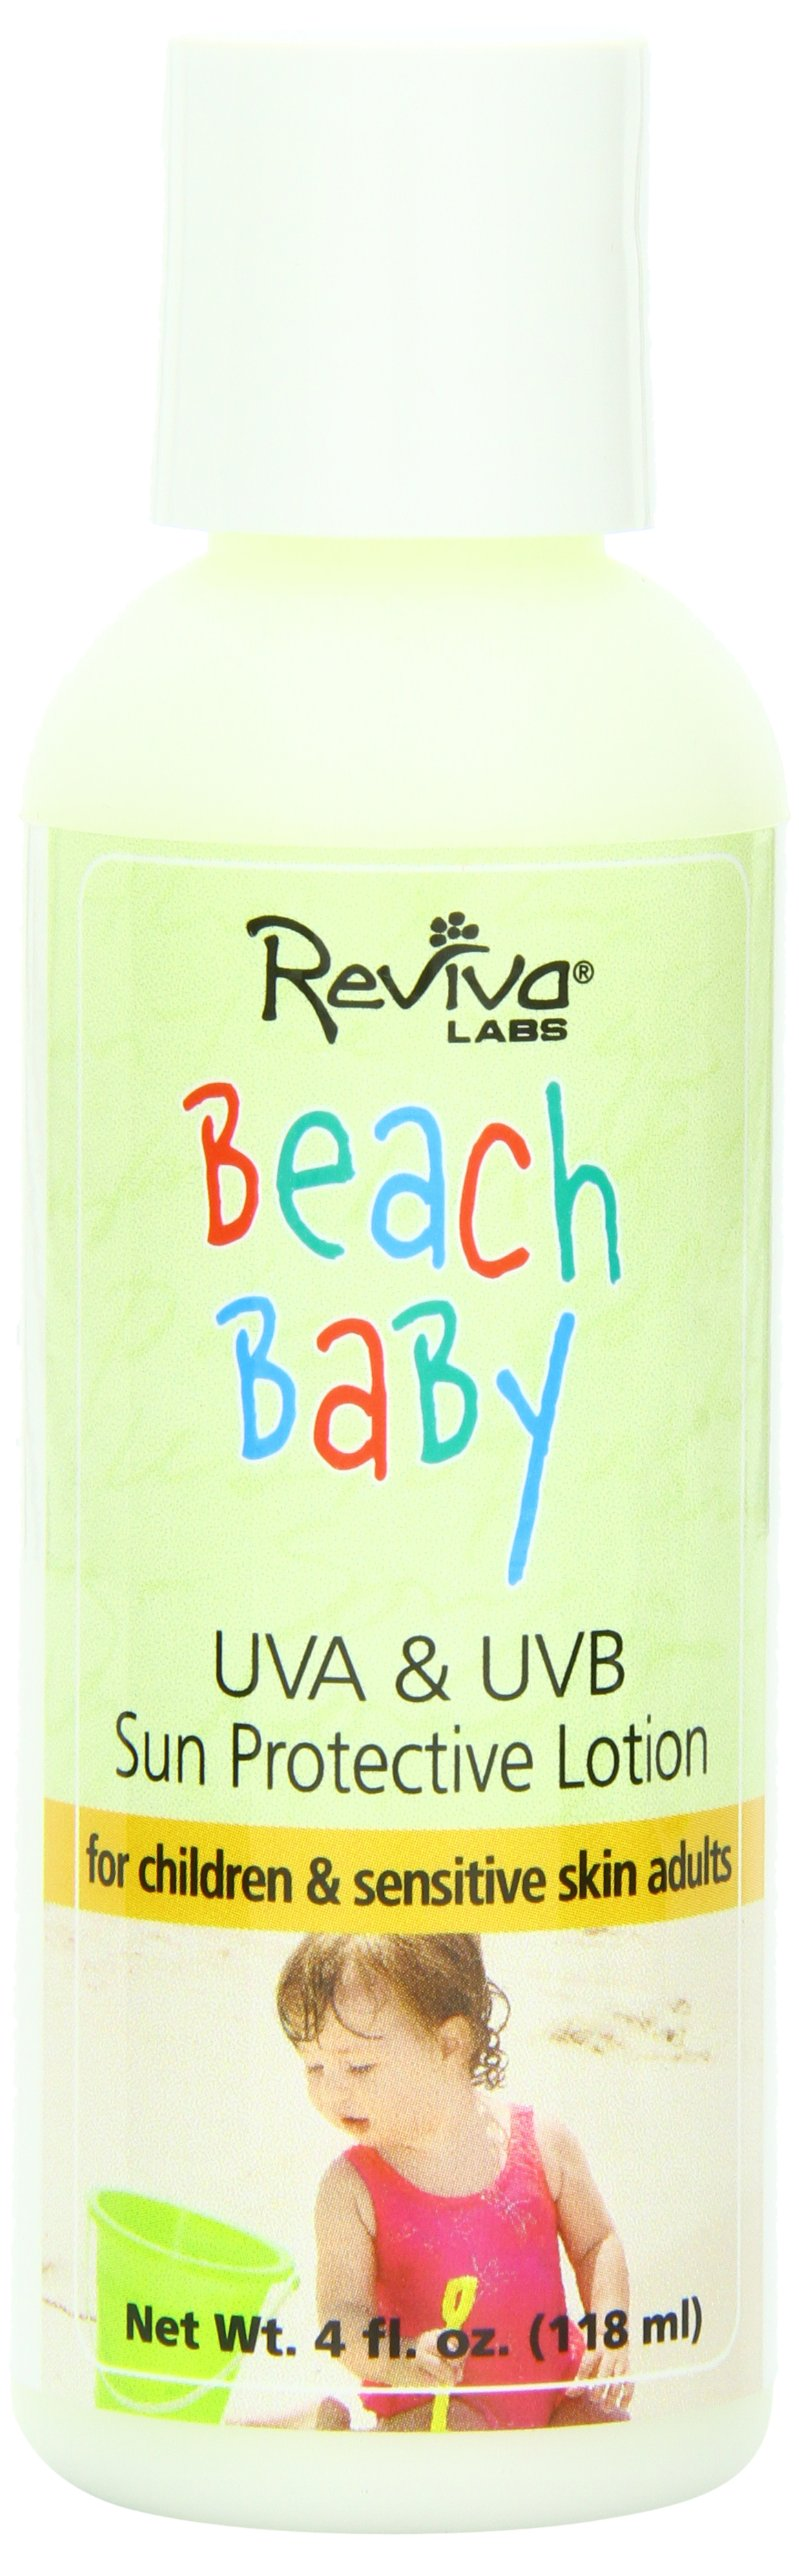 Reviva Labs UVA & UVB Sun Protective Lotion, Beach Baby, SPF 25, 4-Ounces  (Pack of 3)